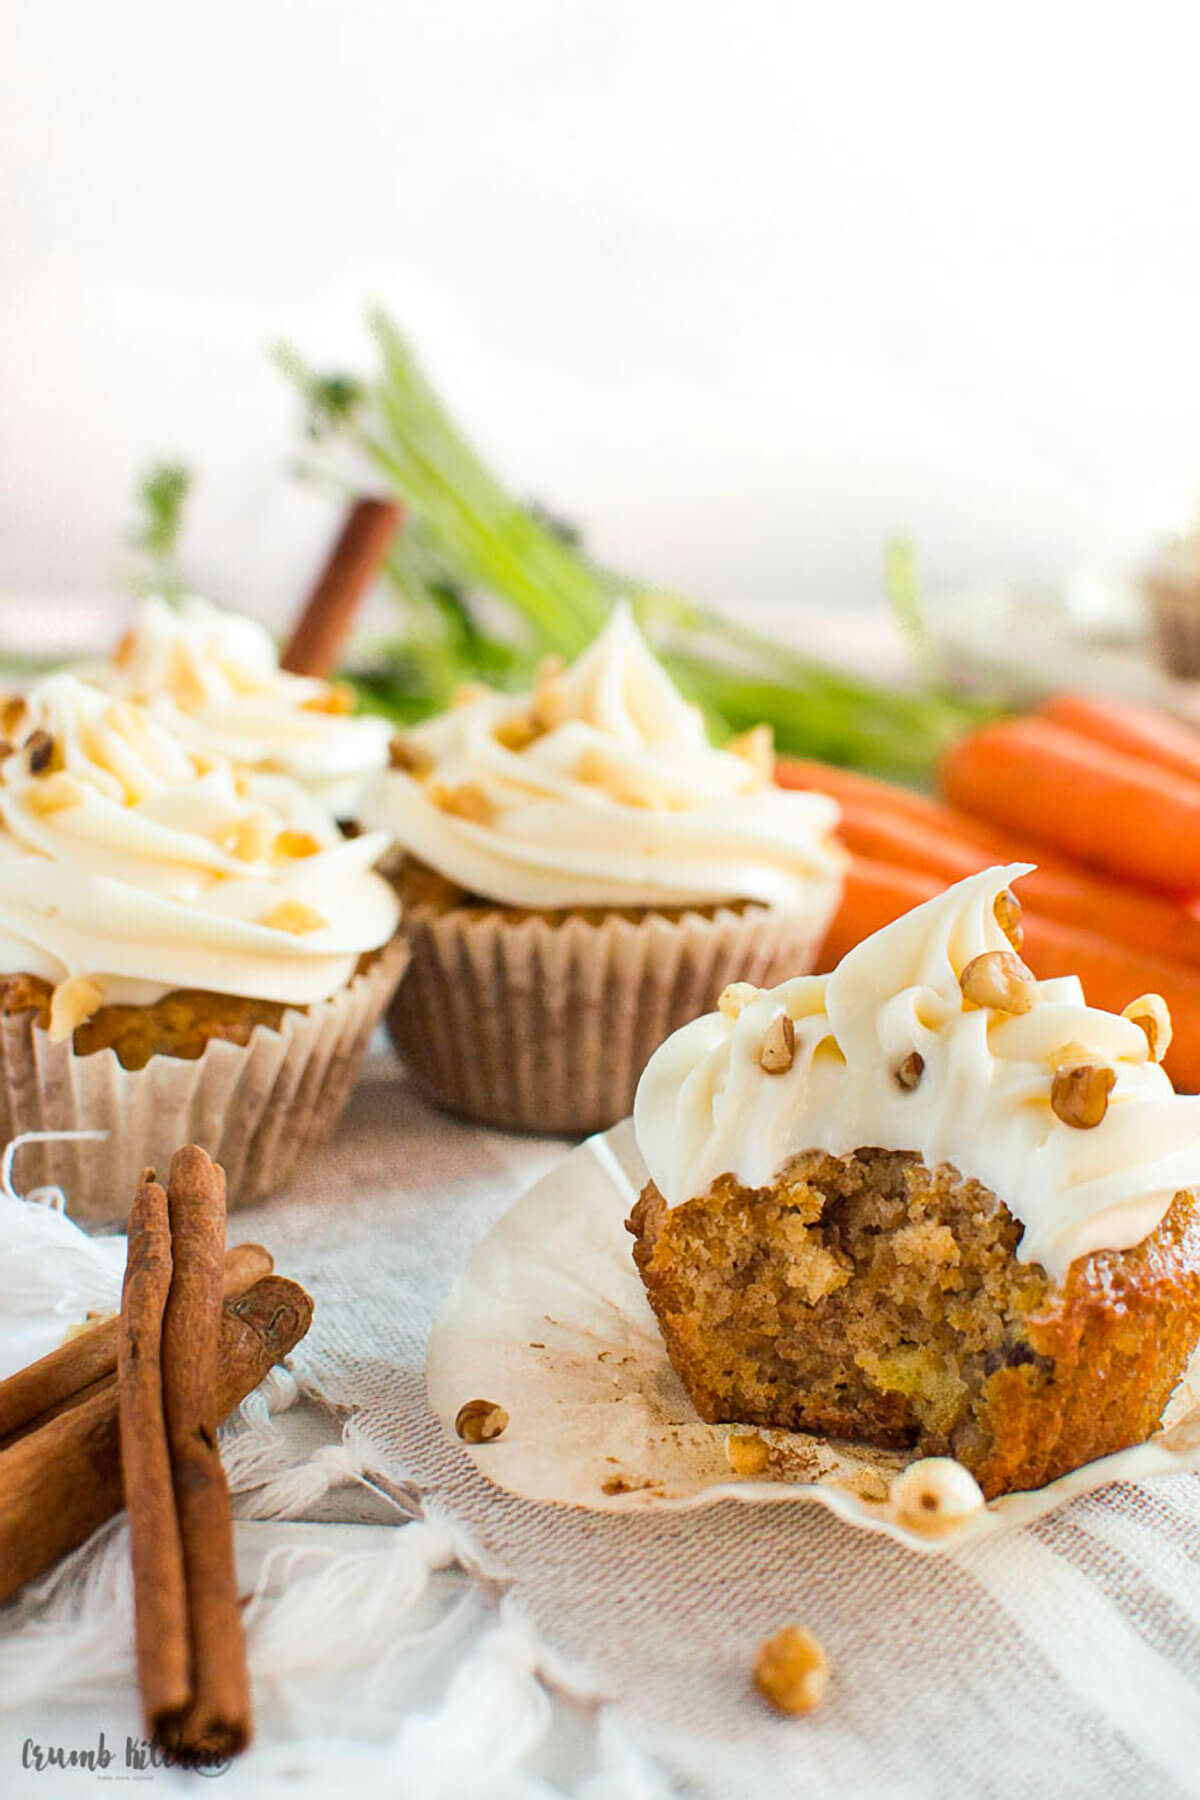 Spiced Carrot Cake Cupcakes